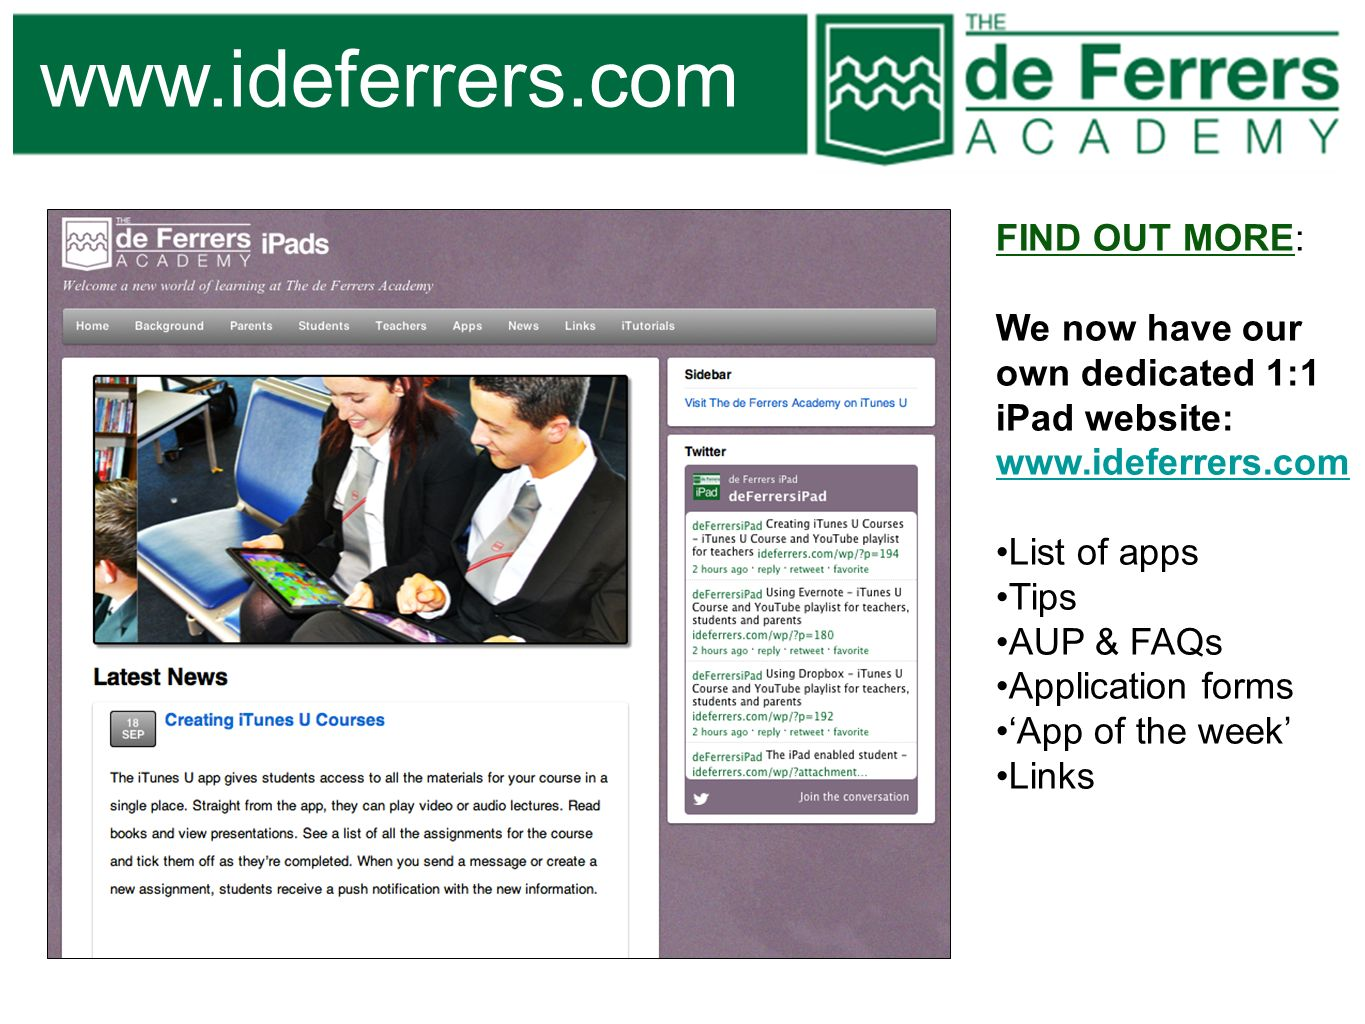 www.ideferrers.com FIND OUT MORE: We now have our own dedicated 1:1 iPad website: www.ideferrers.com www.ideferrers.com List of apps Tips AUP & FAQs A